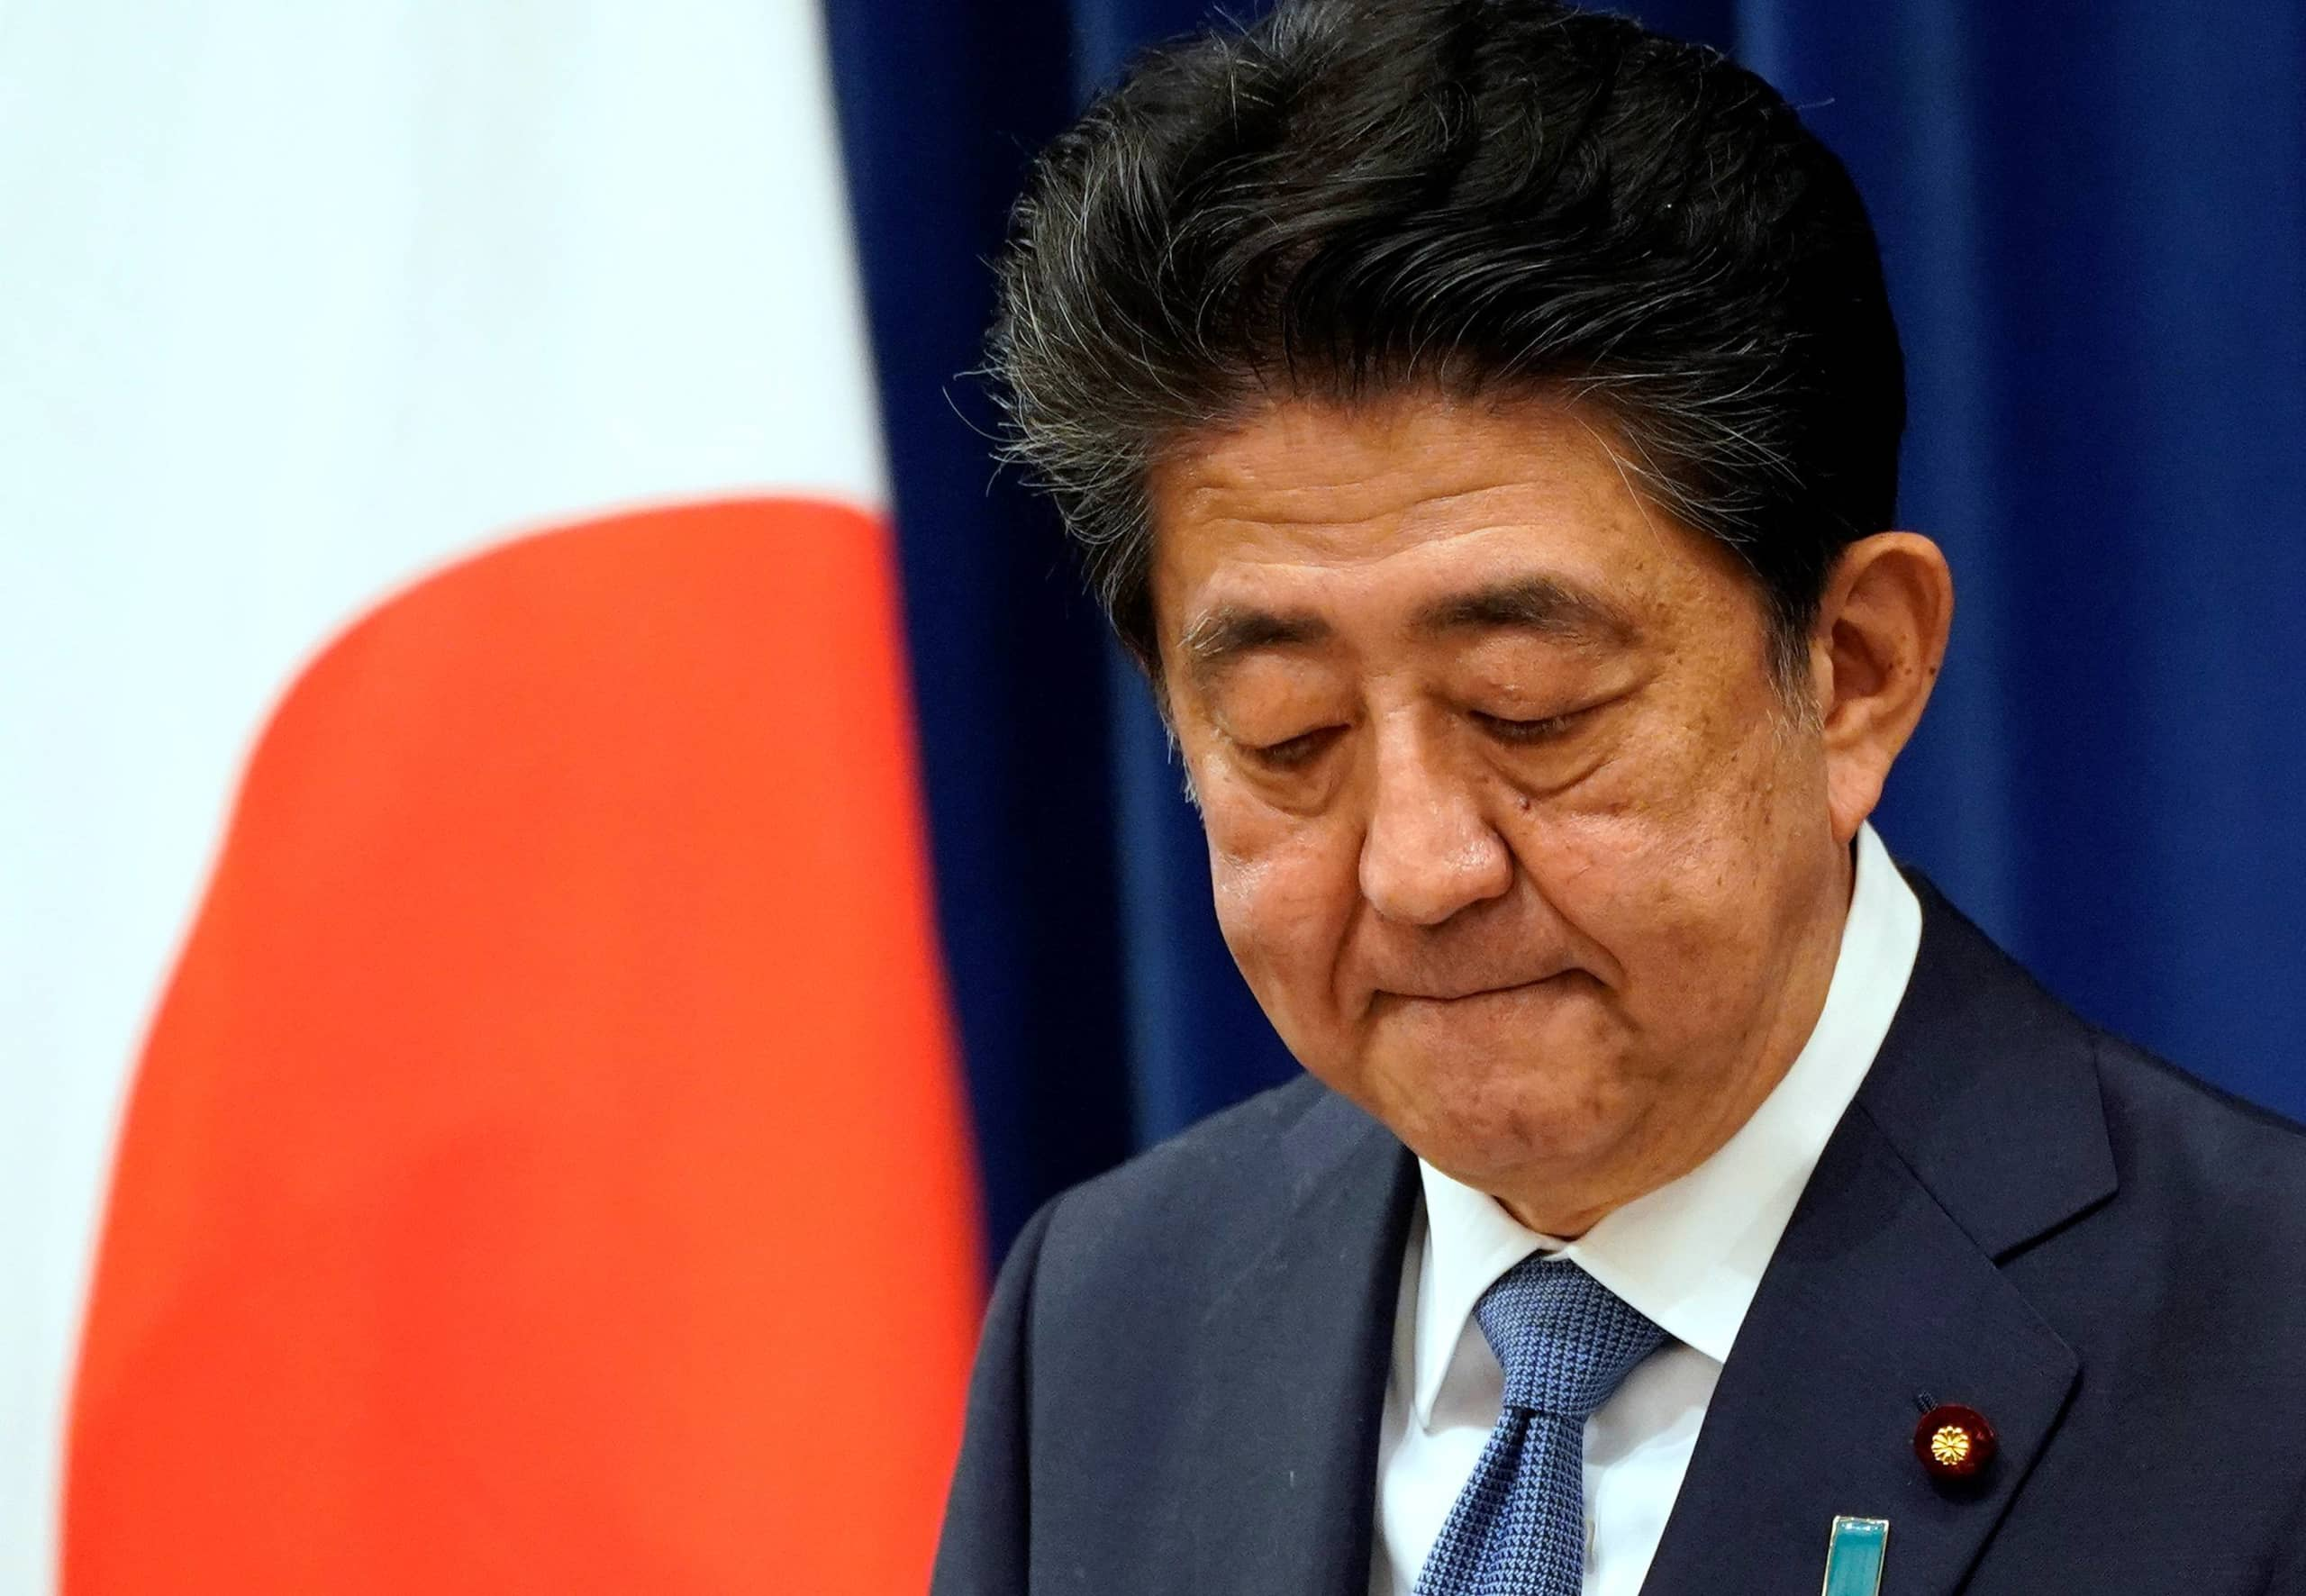 Prime Minister Shinzo Abe reacts during a news conference at the Prime Minister's Office in Tokyo on Friday. | POOL / VIA REUTERS